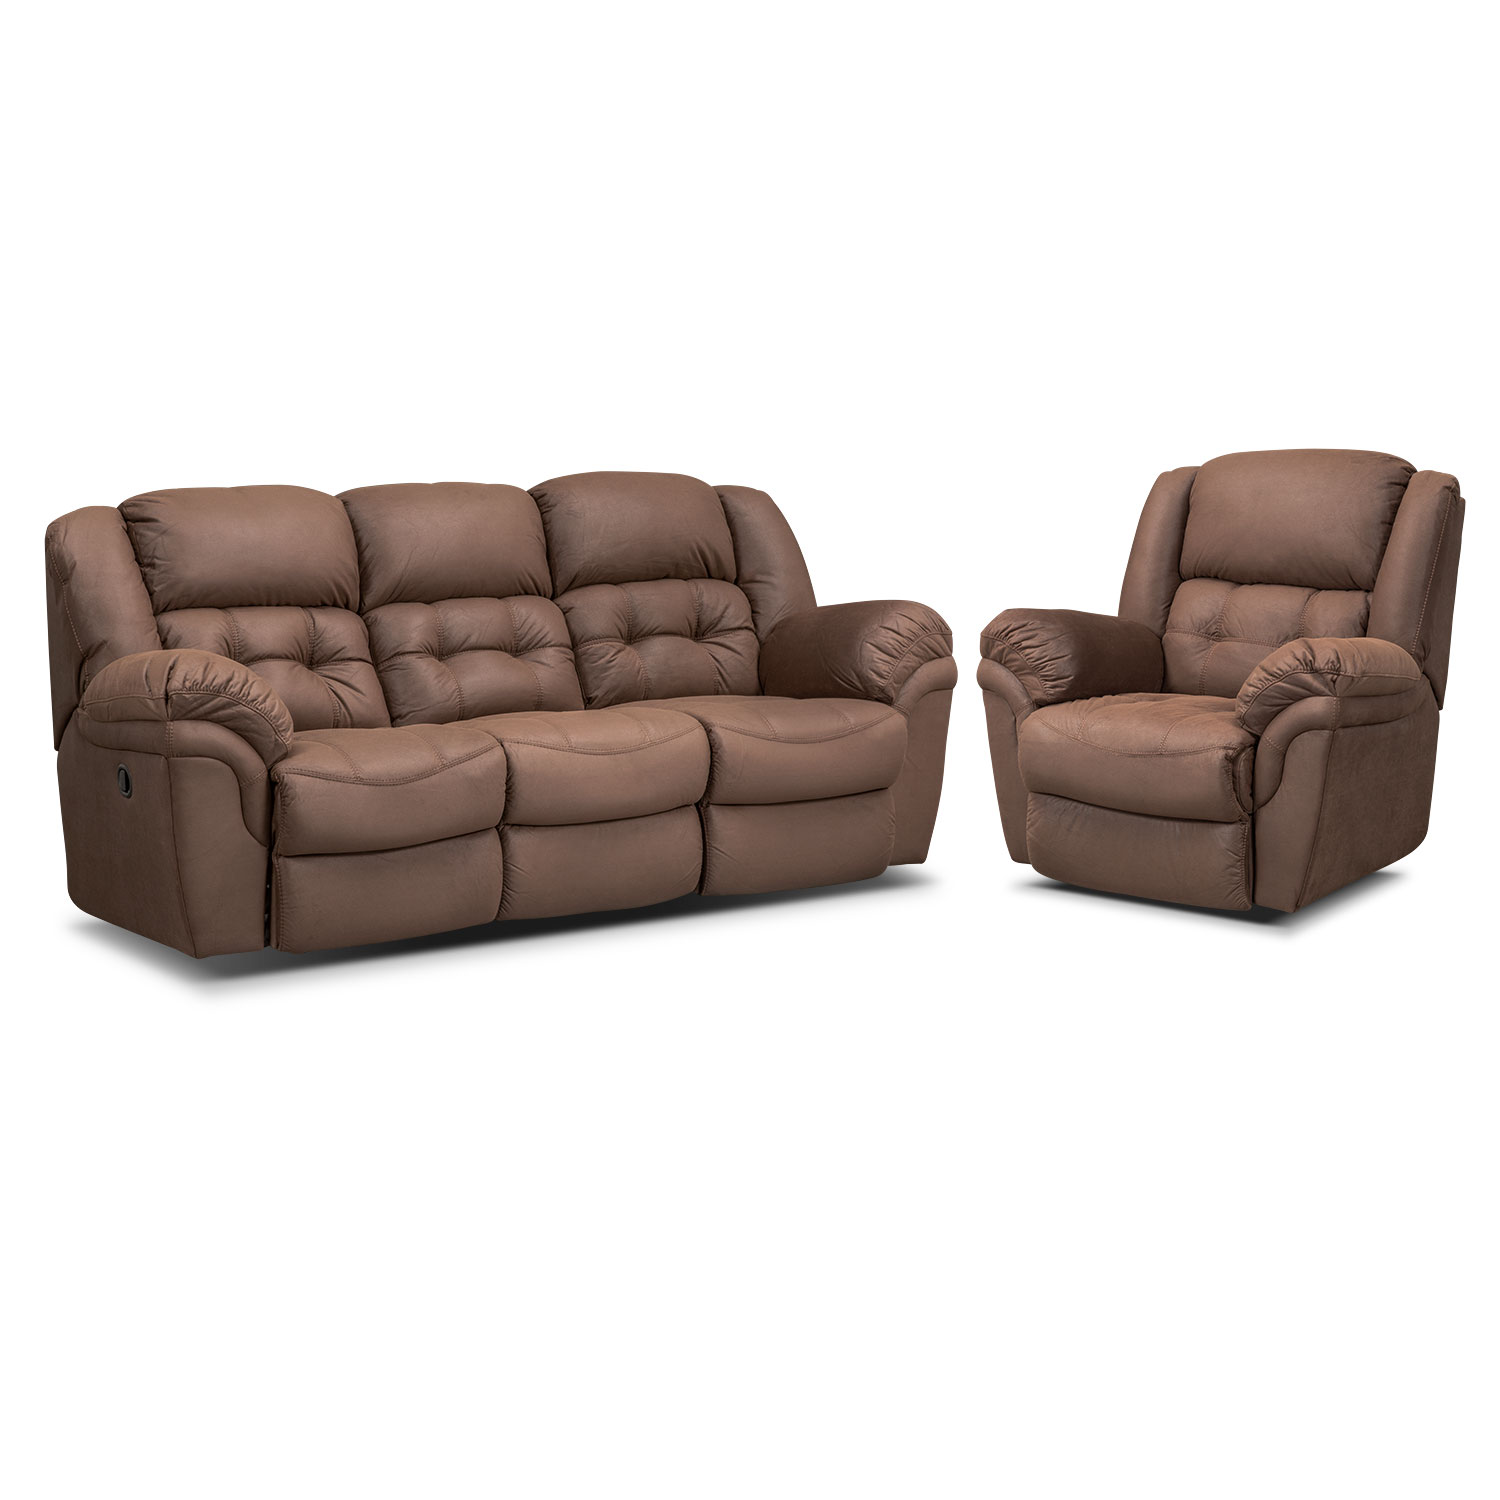 Living Room Furniture - Lancer Chocolate Manual Reclining Sofa and Glider Recliner Set